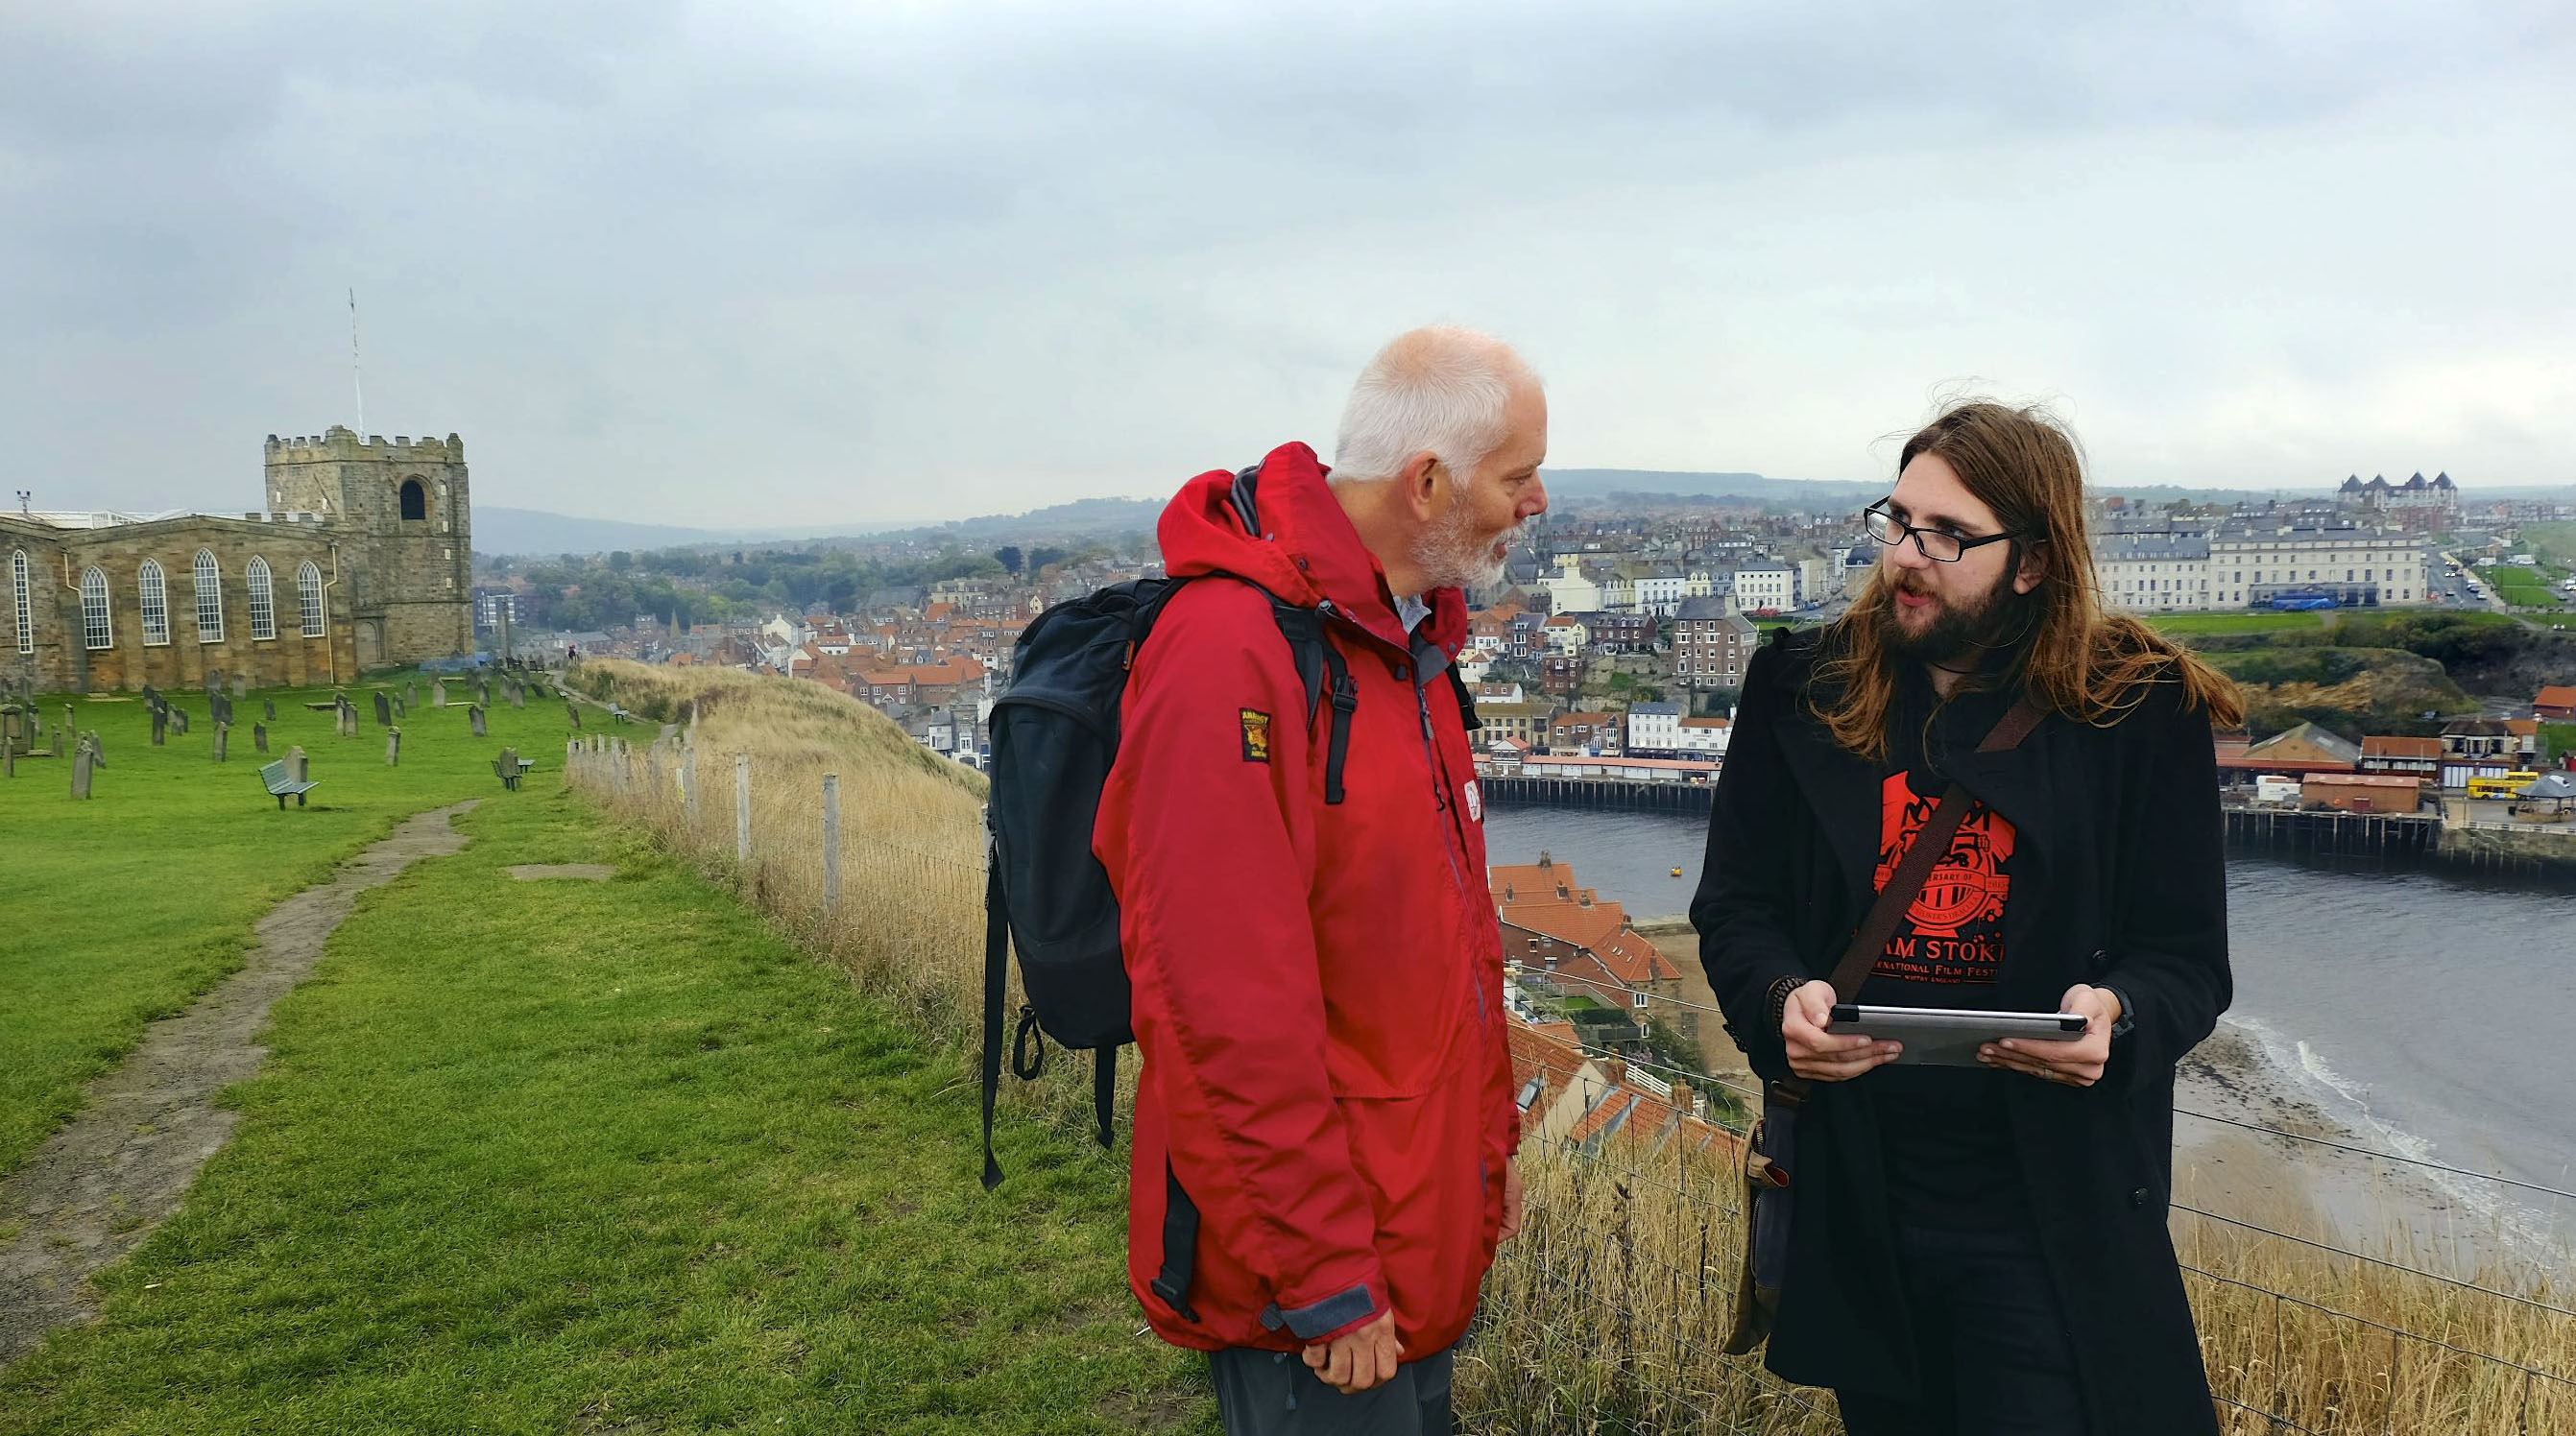 Bernie McLinden and Michael McCarthy try out the new Bram Stoker App on the clifftop above Whitby. ©Tony Bartholomew / Turnstone Media